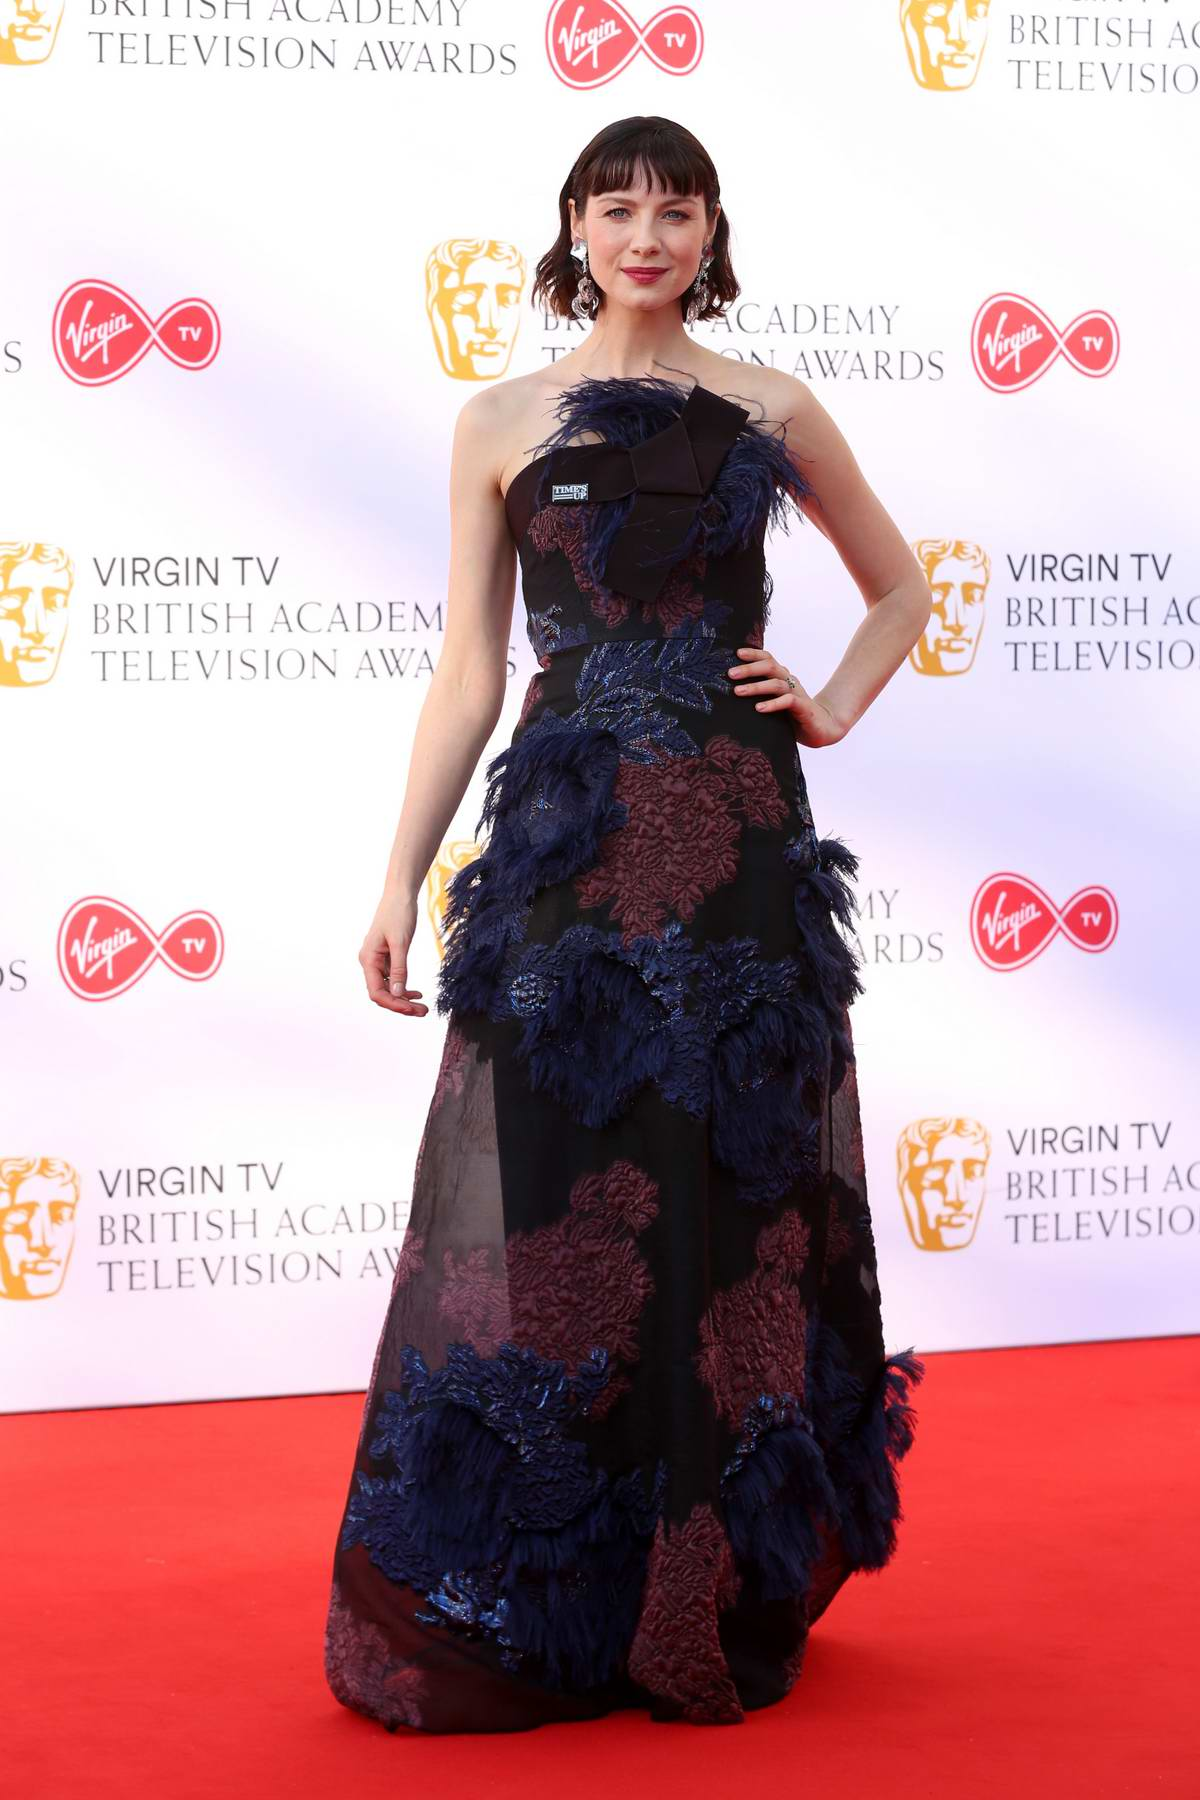 Caitriona Balfe attends British Academy Television Awards (BAFTA 2018) at Royal Festival Hall in London, UK